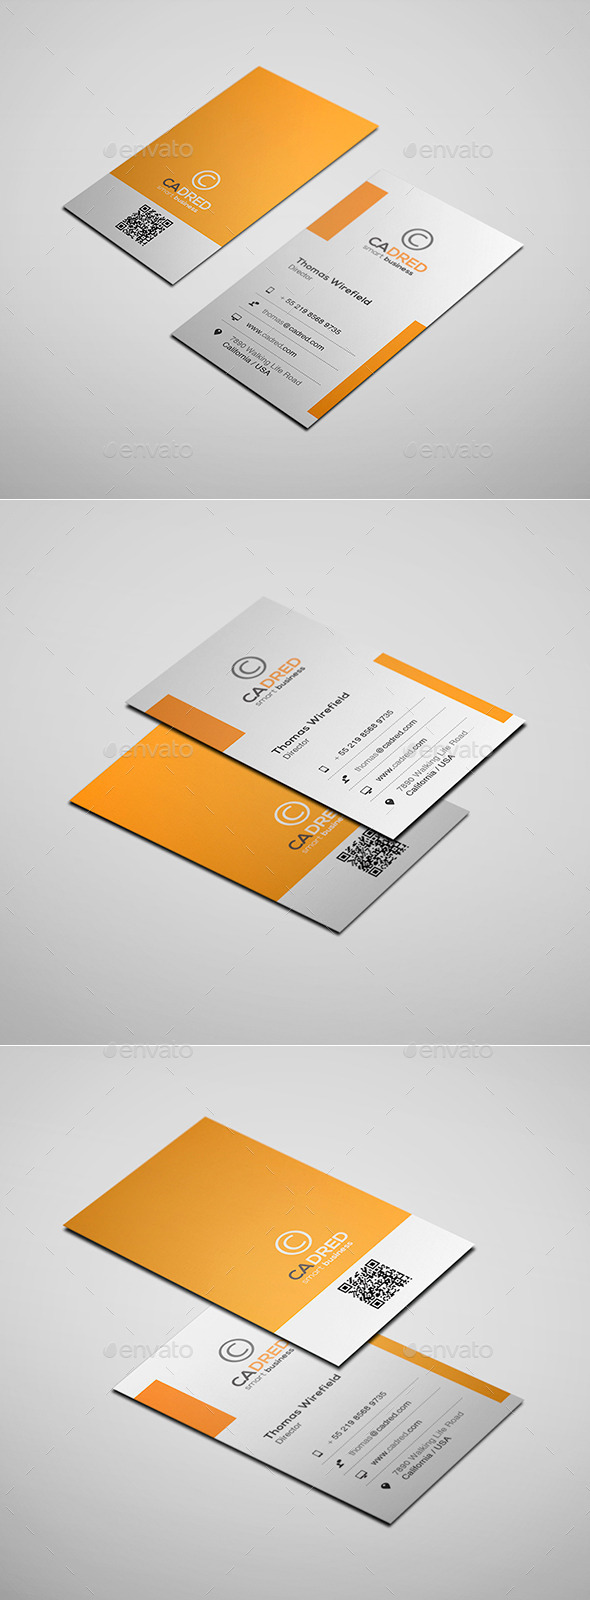 GraphicRiver Business Card Vol 12 11582237